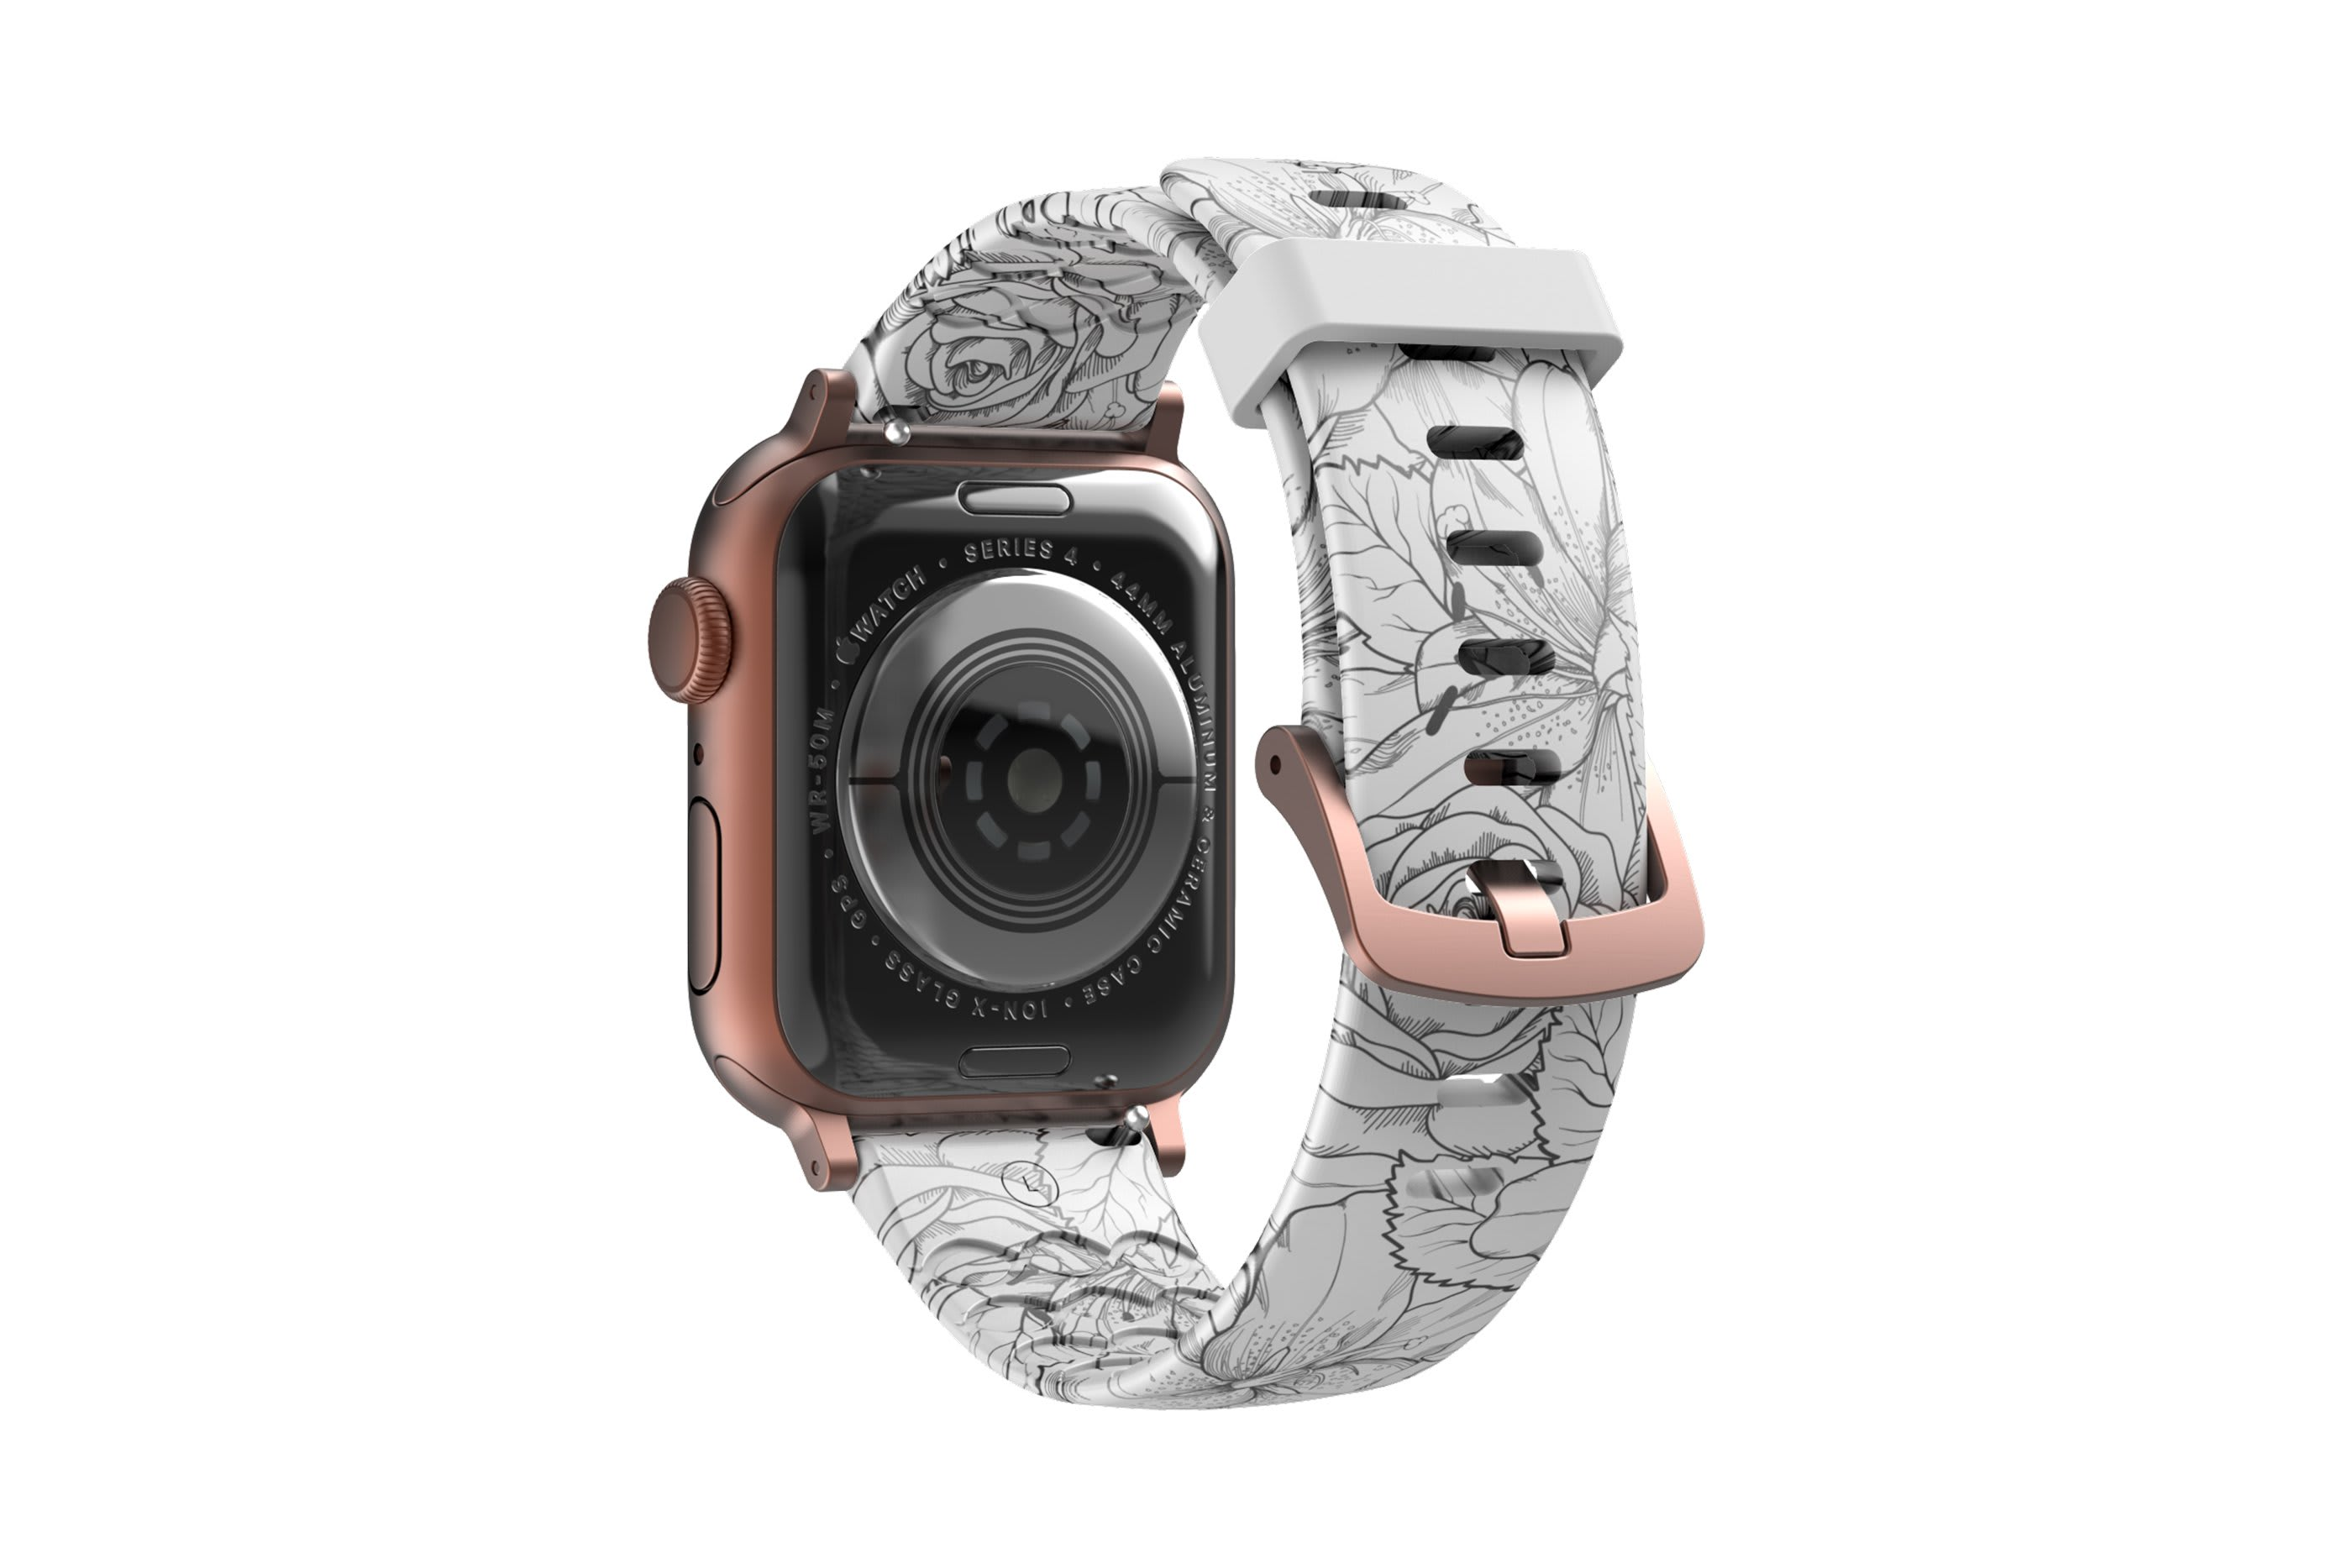 Winter Rose Apple Watch Band with rose gold hardware viewed from rear